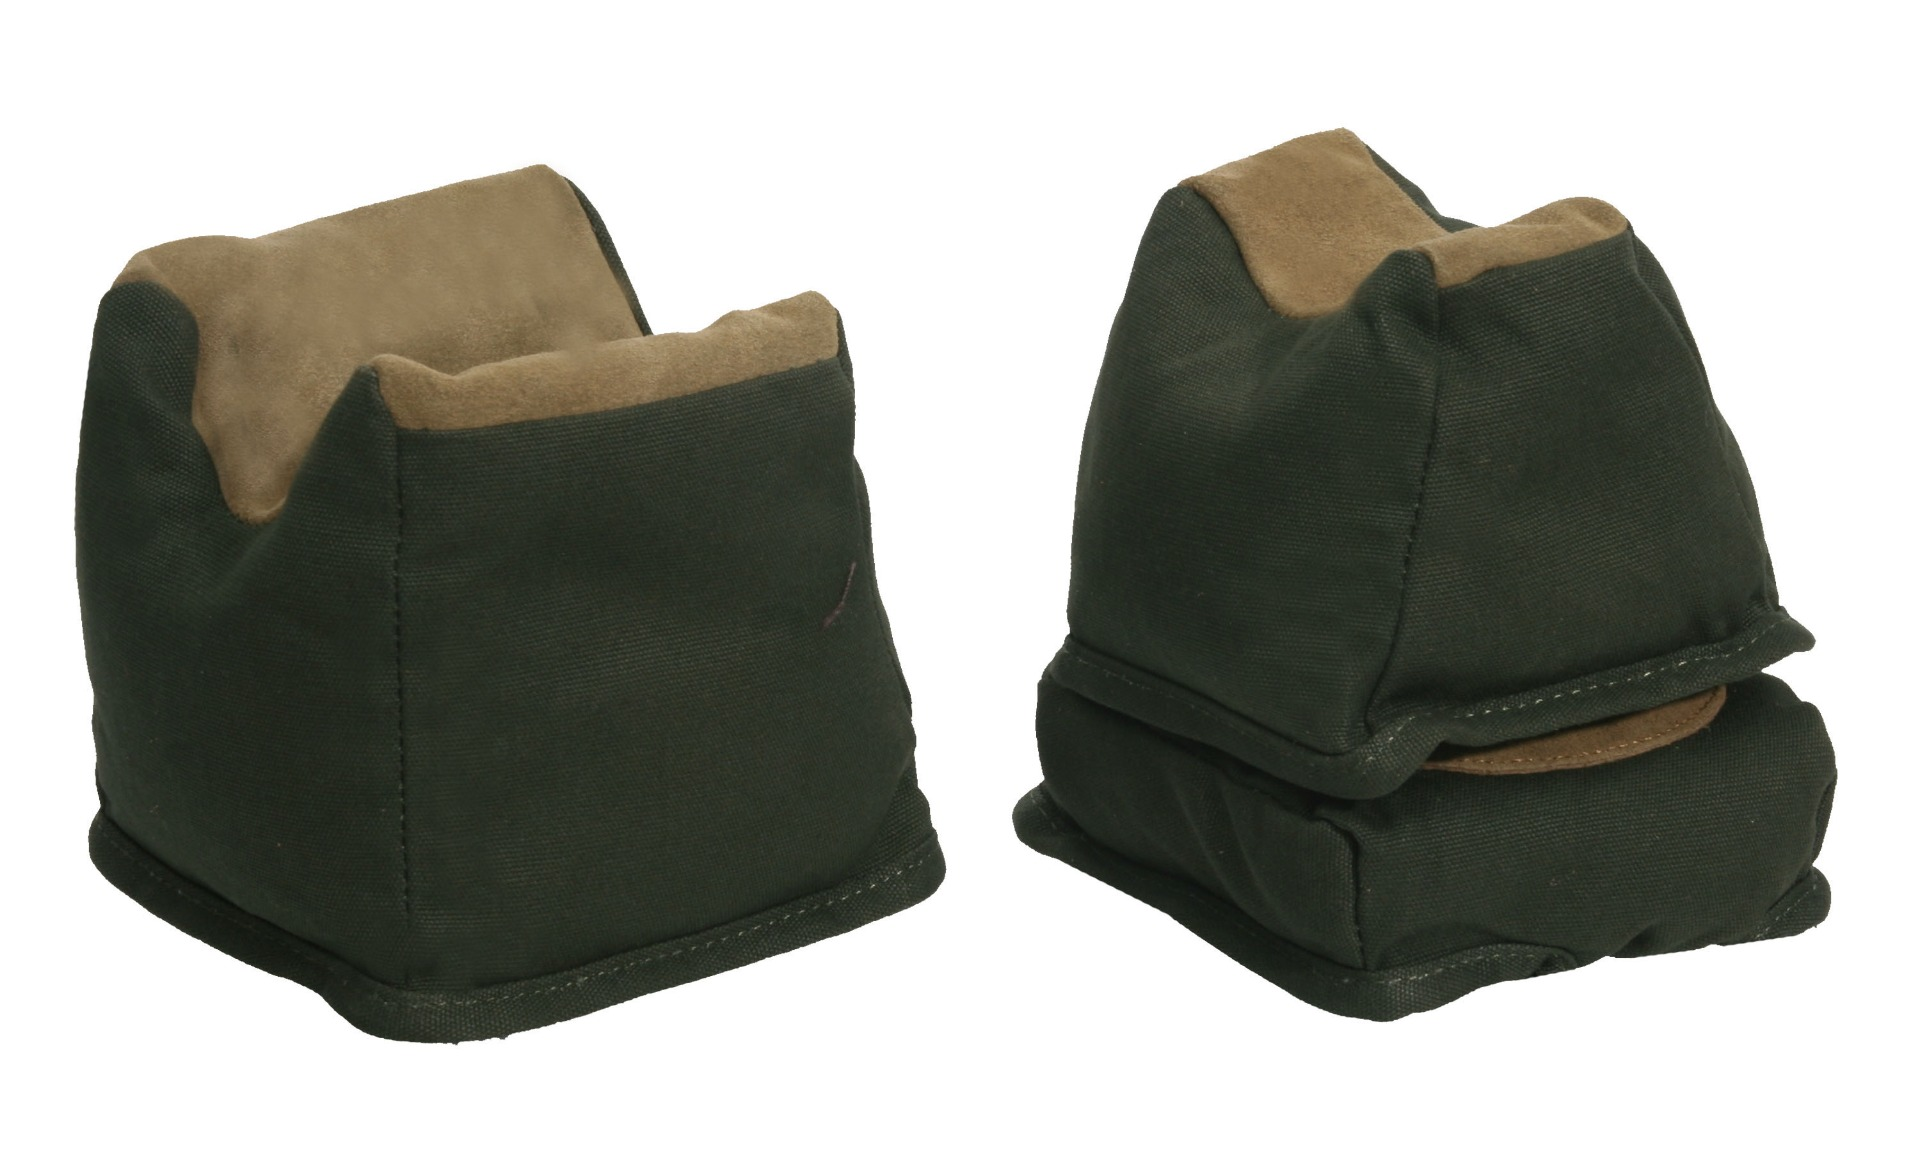 The Outdoor Connection Green 3 Piece Bench Rest Bag Trio